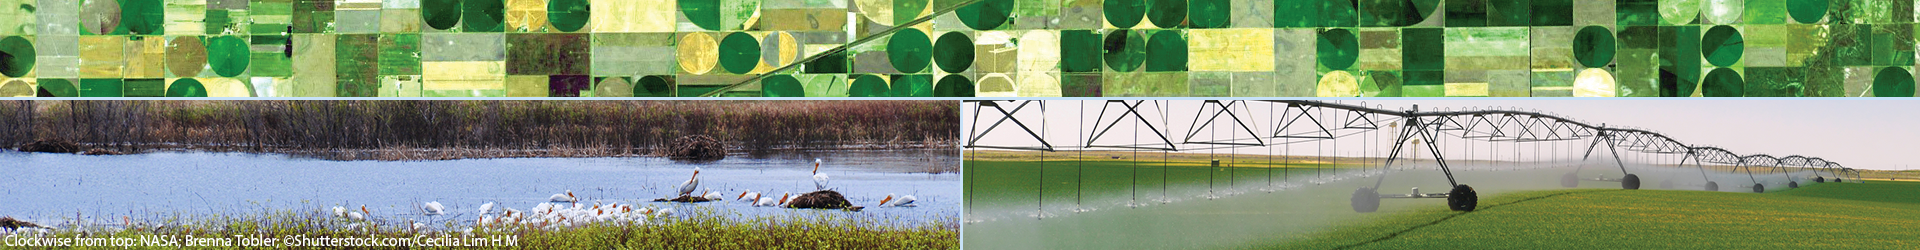 Images of groundwater use for farming and of surface groundwater in Nebraska with resting water birds. B. Tobler/AGI